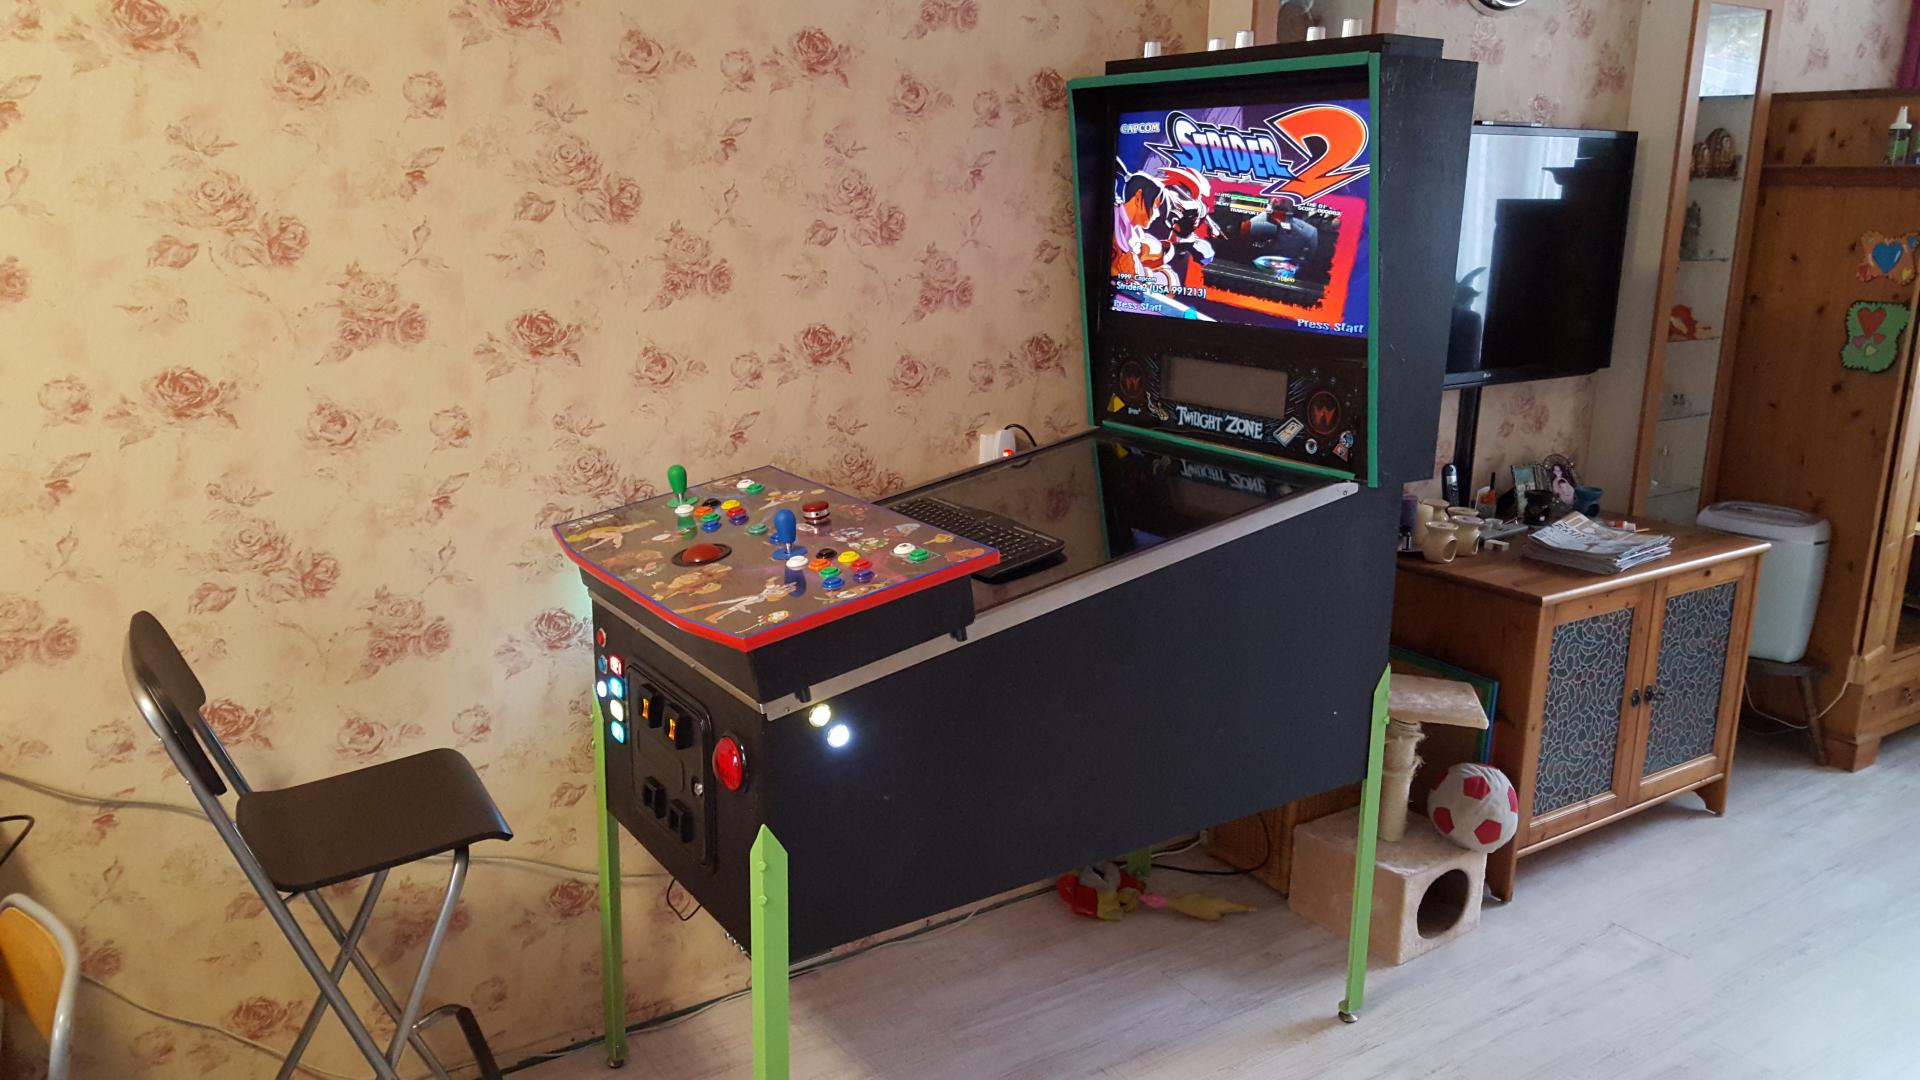 My Pinball with Arcade Controller For 2 Players - HyperPin Cabinet